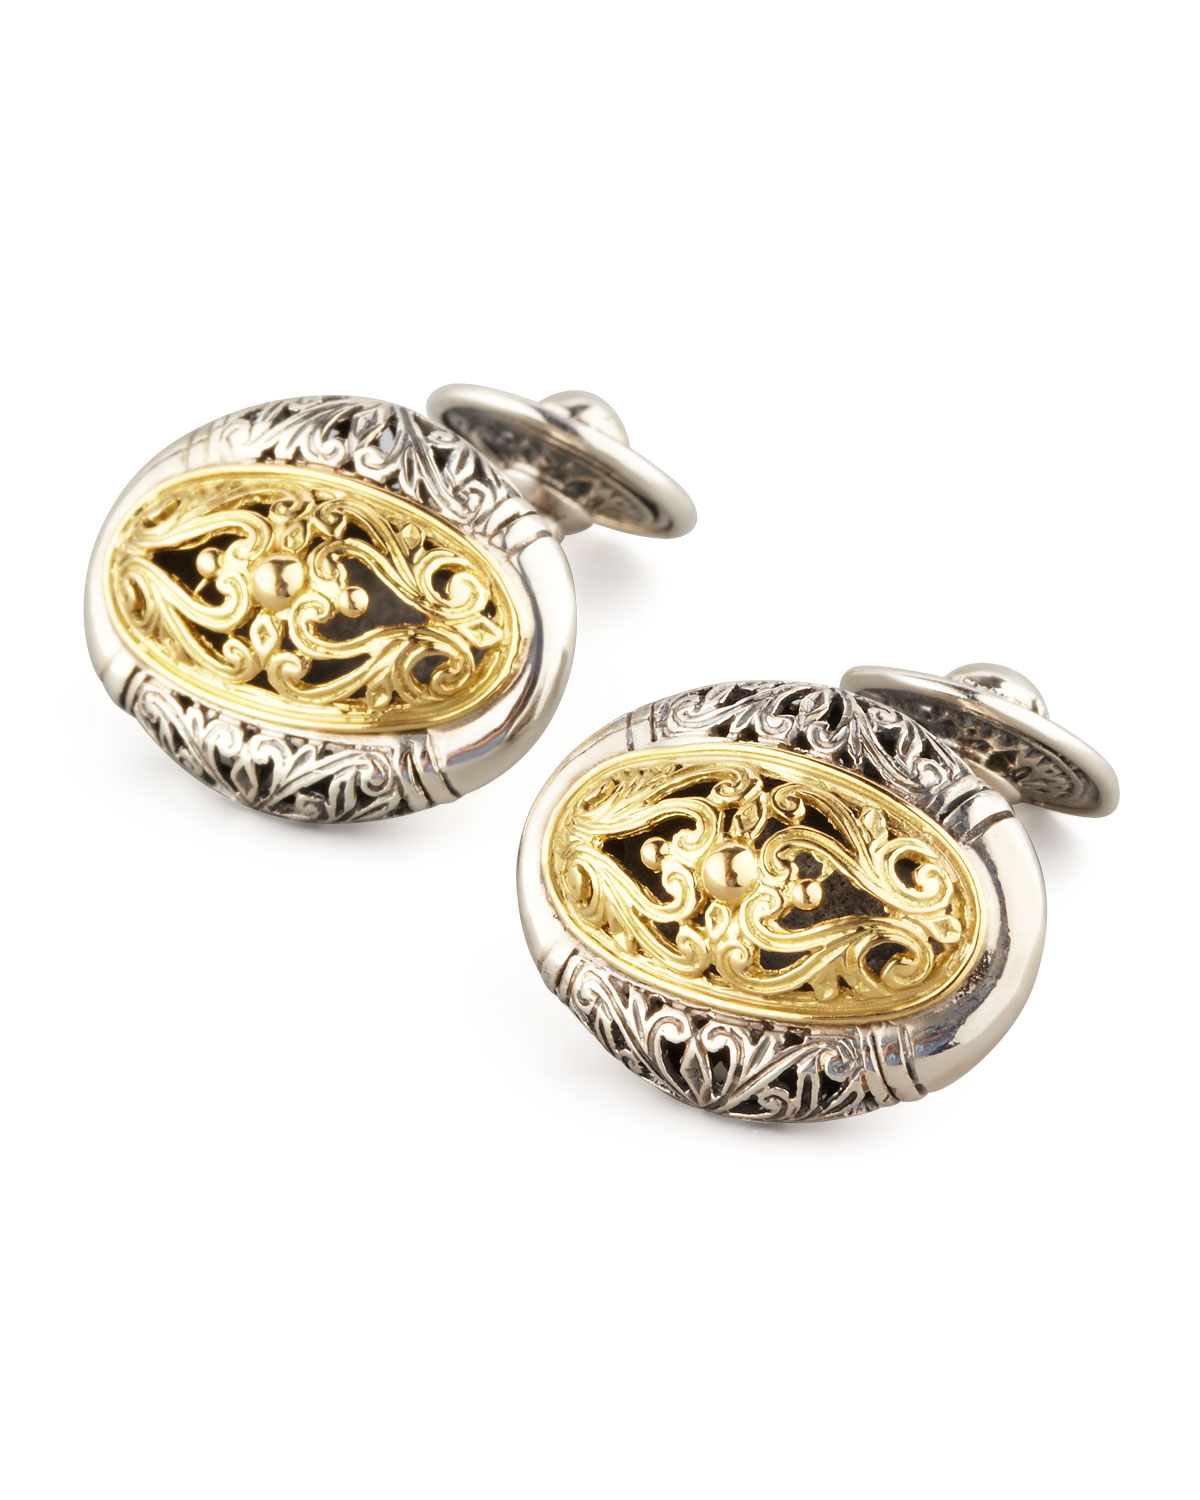 Mixed Metal Oval Cuff Links